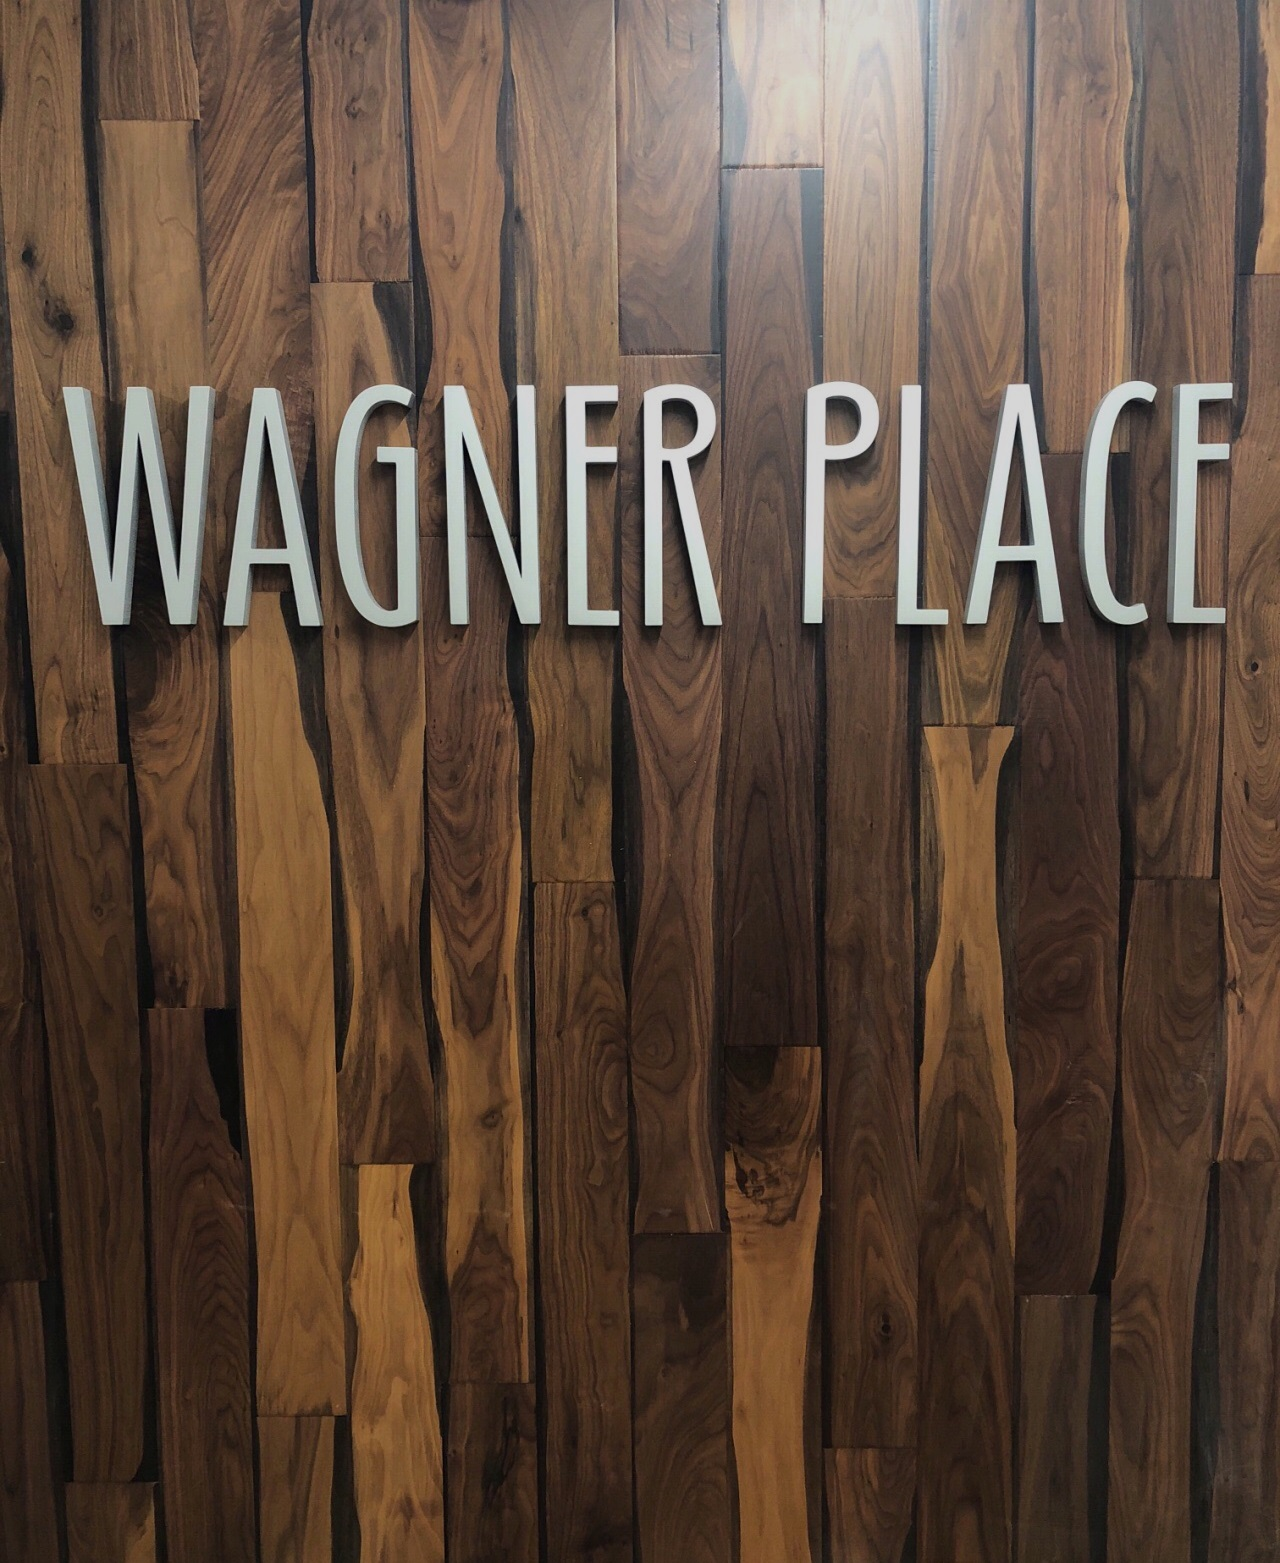 Wagner Place - Ford Motor Co. - Dearborn